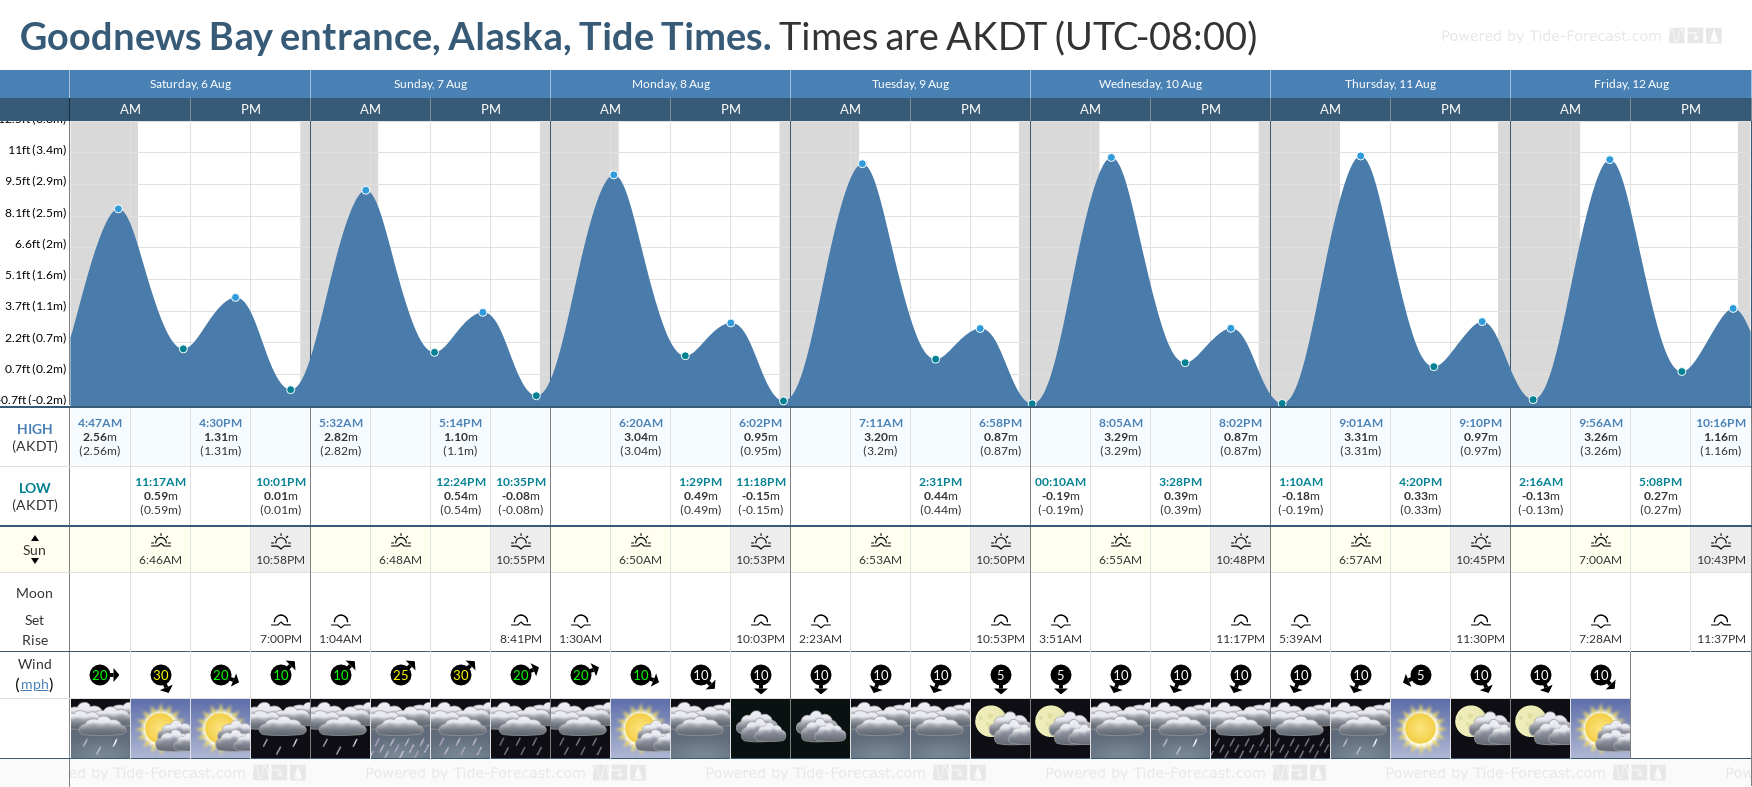 Goodnews Bay entrance, Alaska Tide Chart including high and low tide tide times for the next 7 days